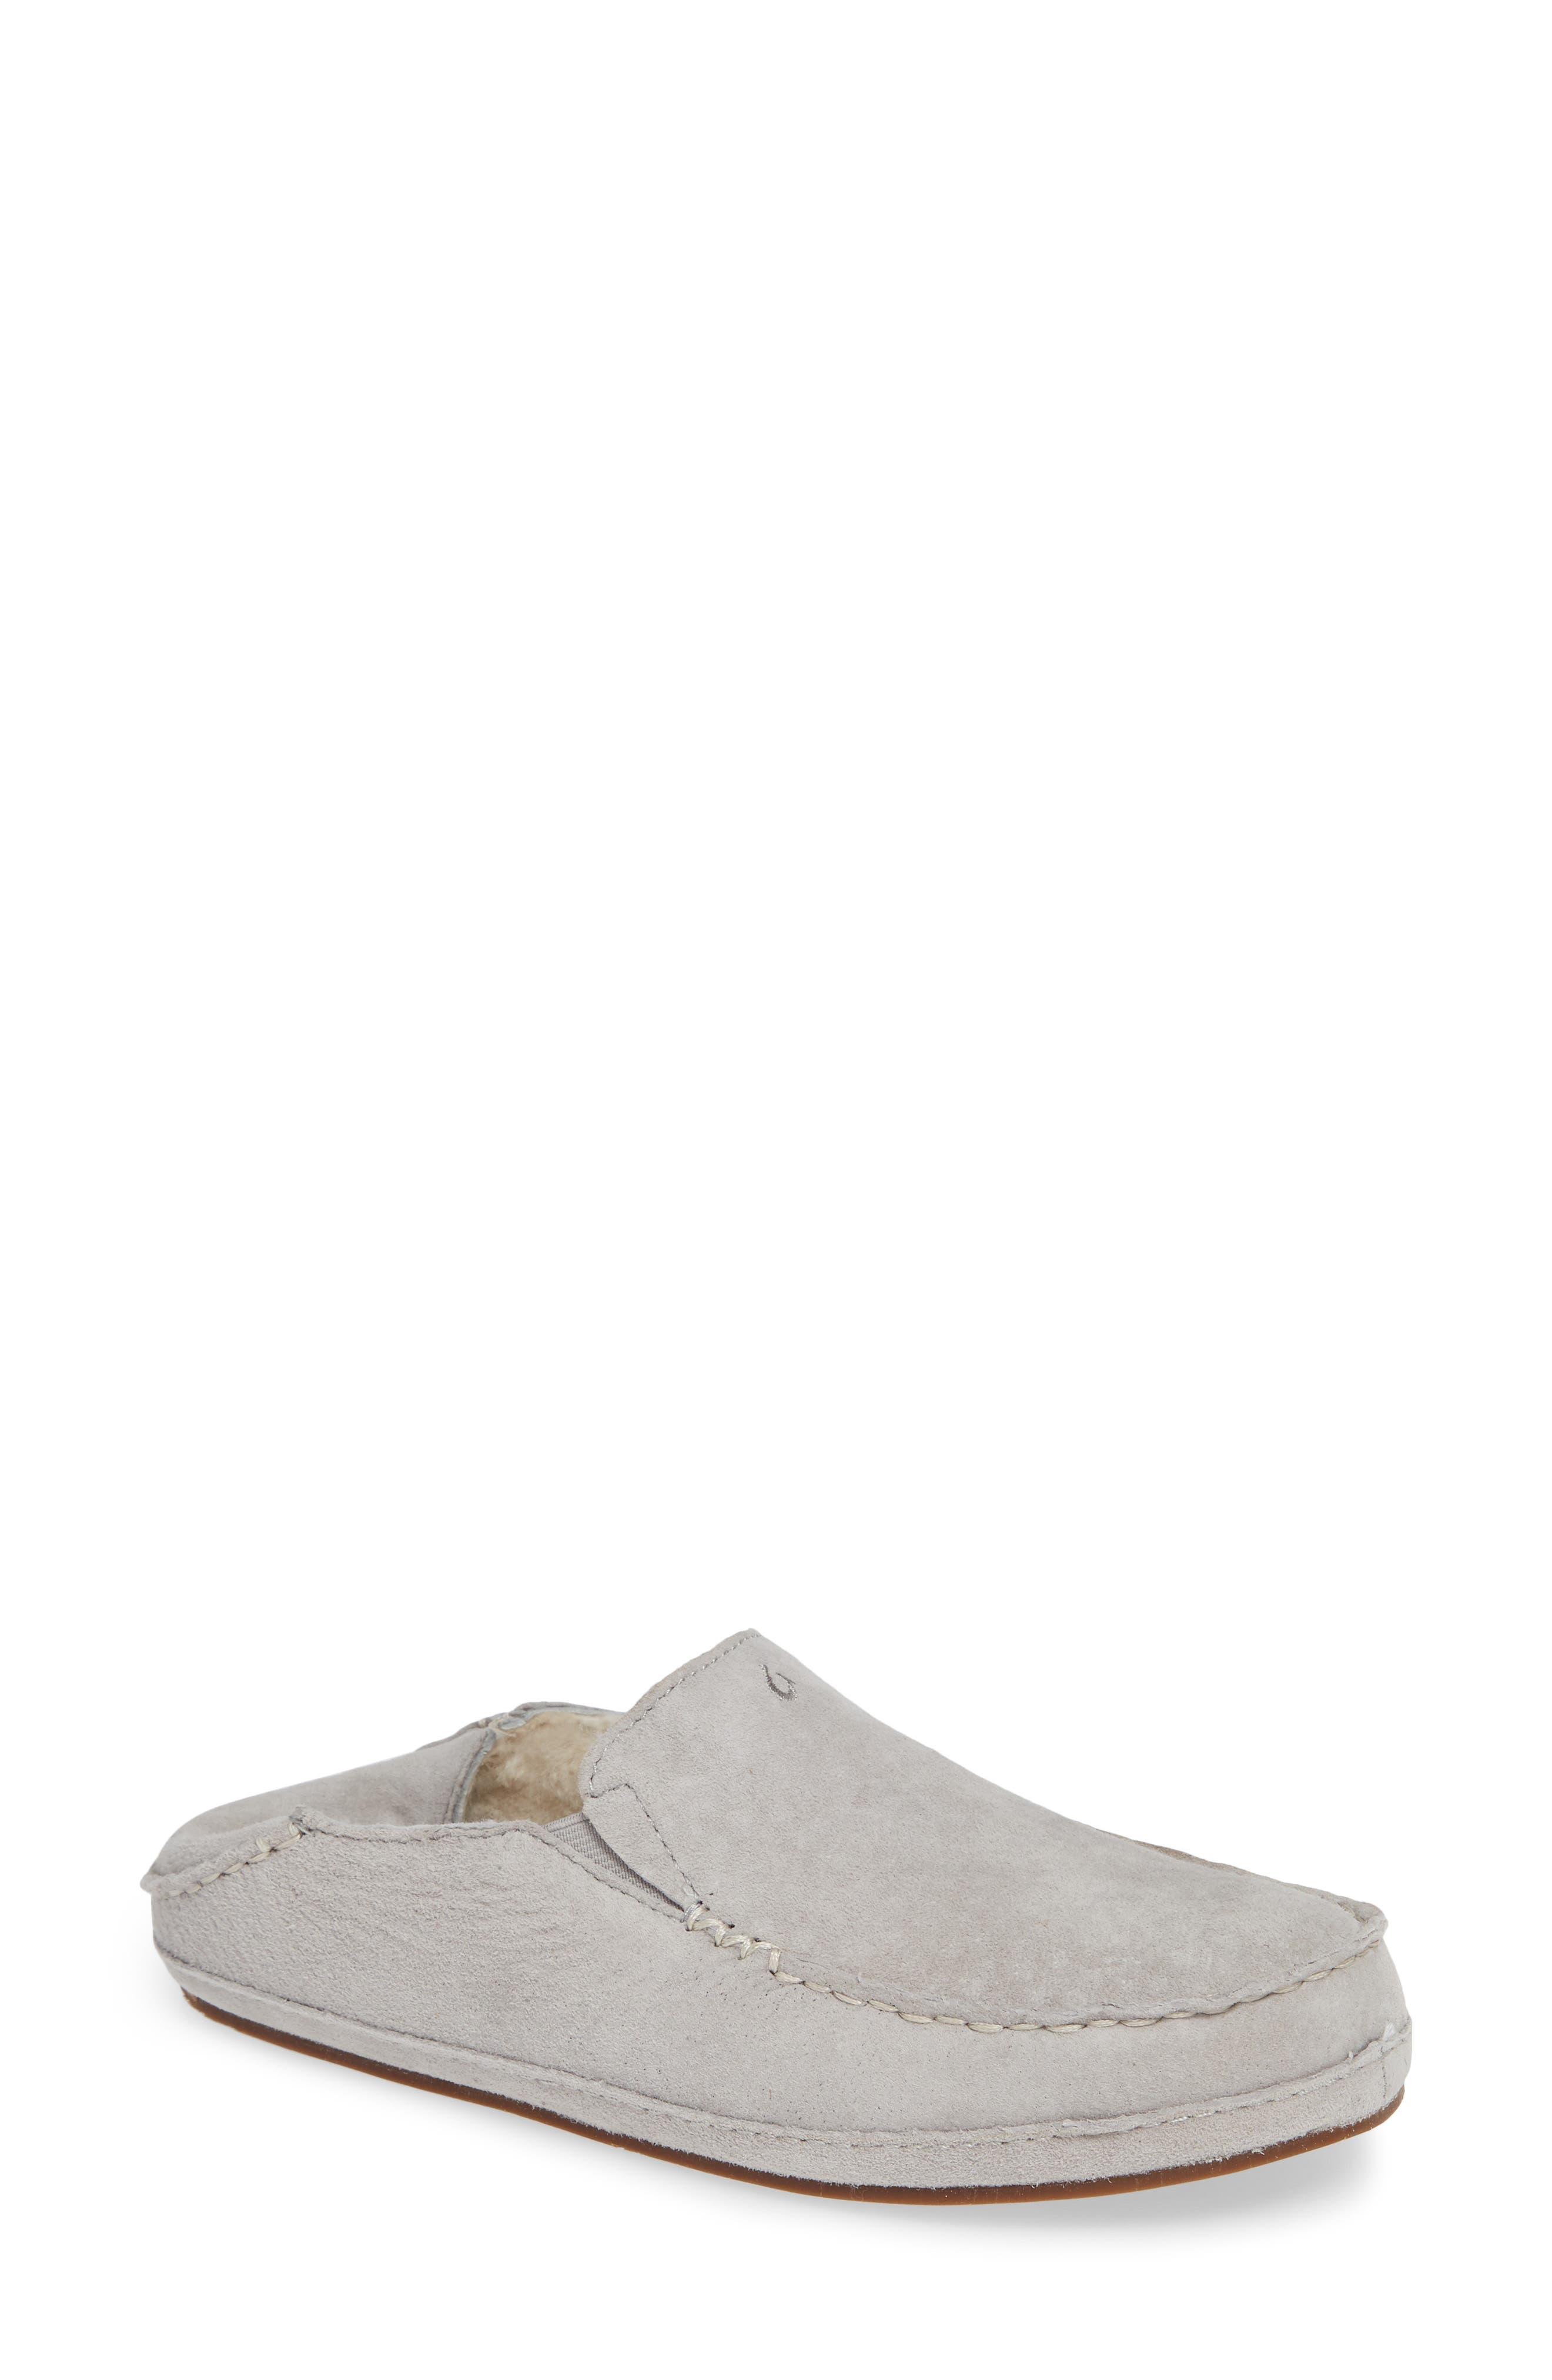 Nohea Nubuck Slipper,                         Main,                         color, PALE GREY/ PALE GREY LEATHER